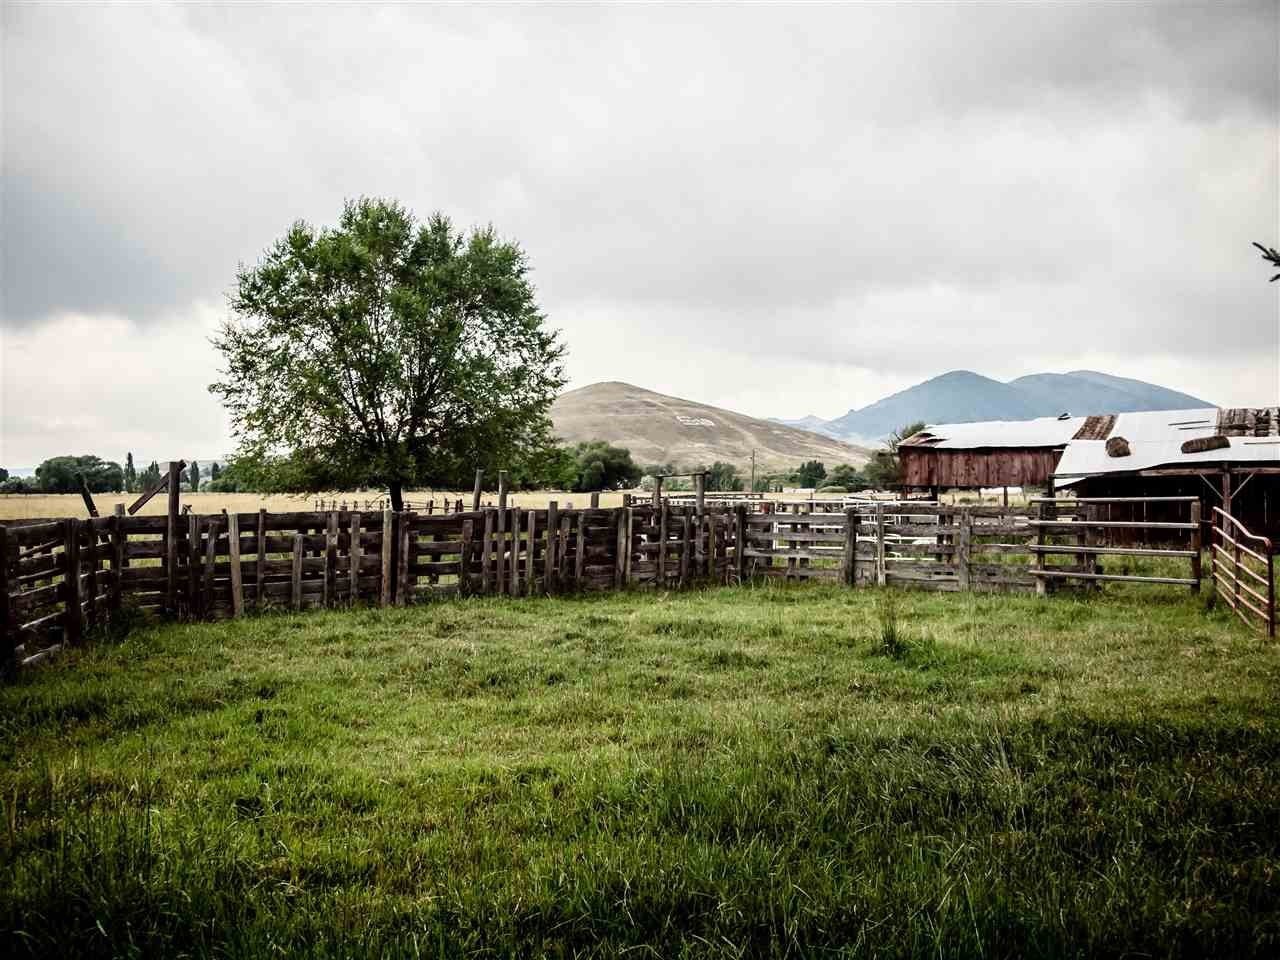 Farm / Ranch for Sale at 5 Beach Street Salmon, Idaho 83467